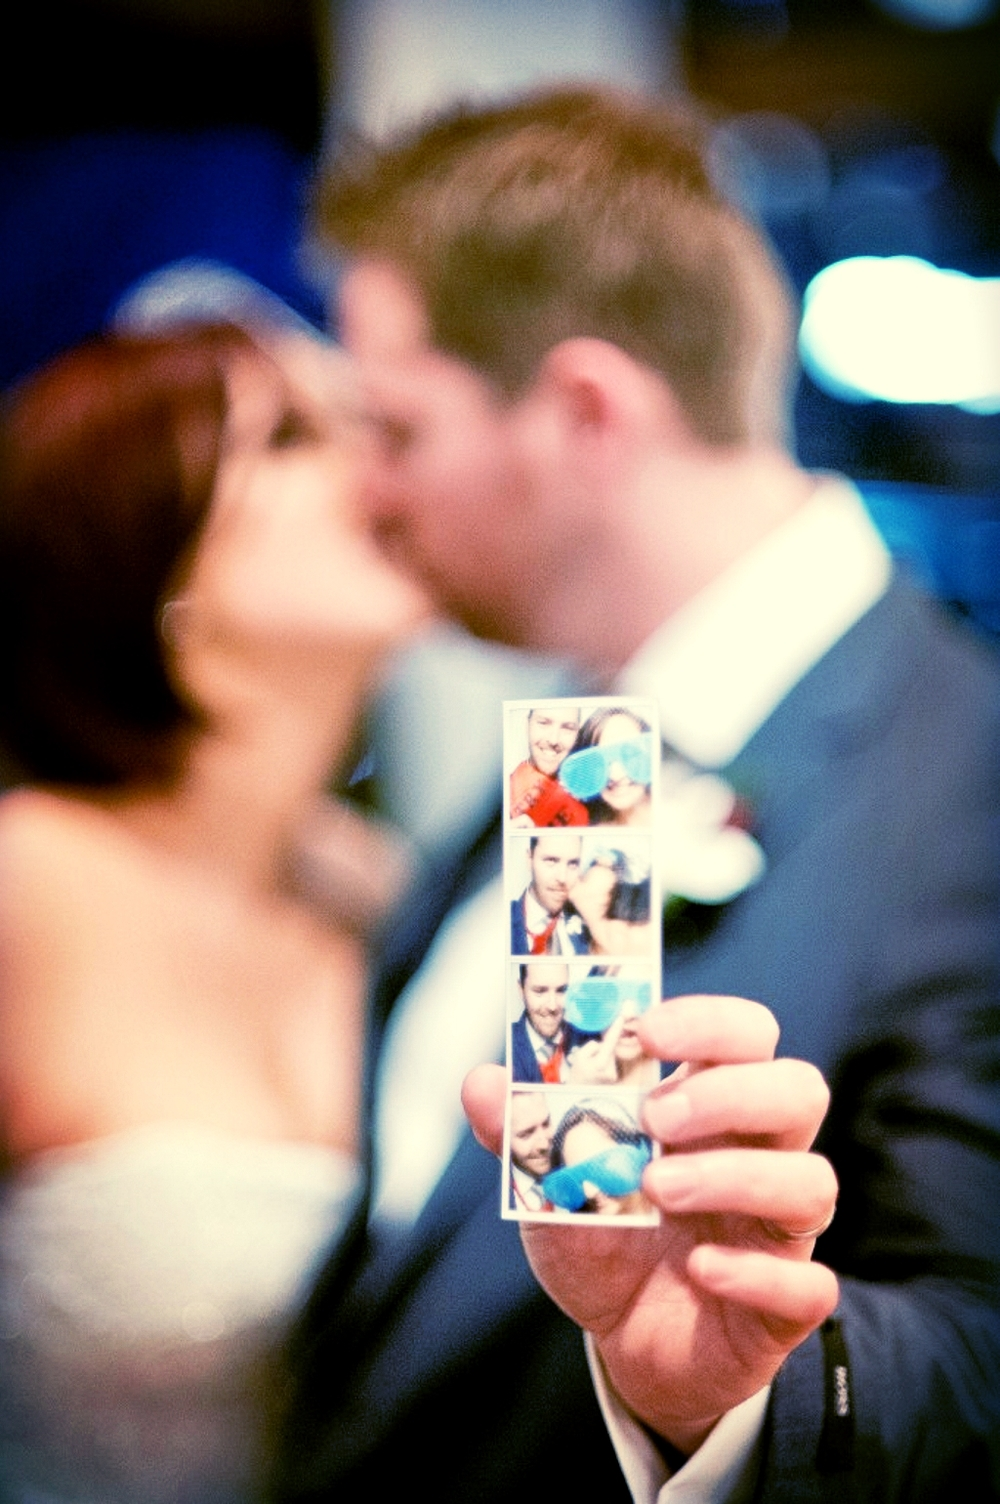 A photobooth provides fun keepsakes for you and your guests